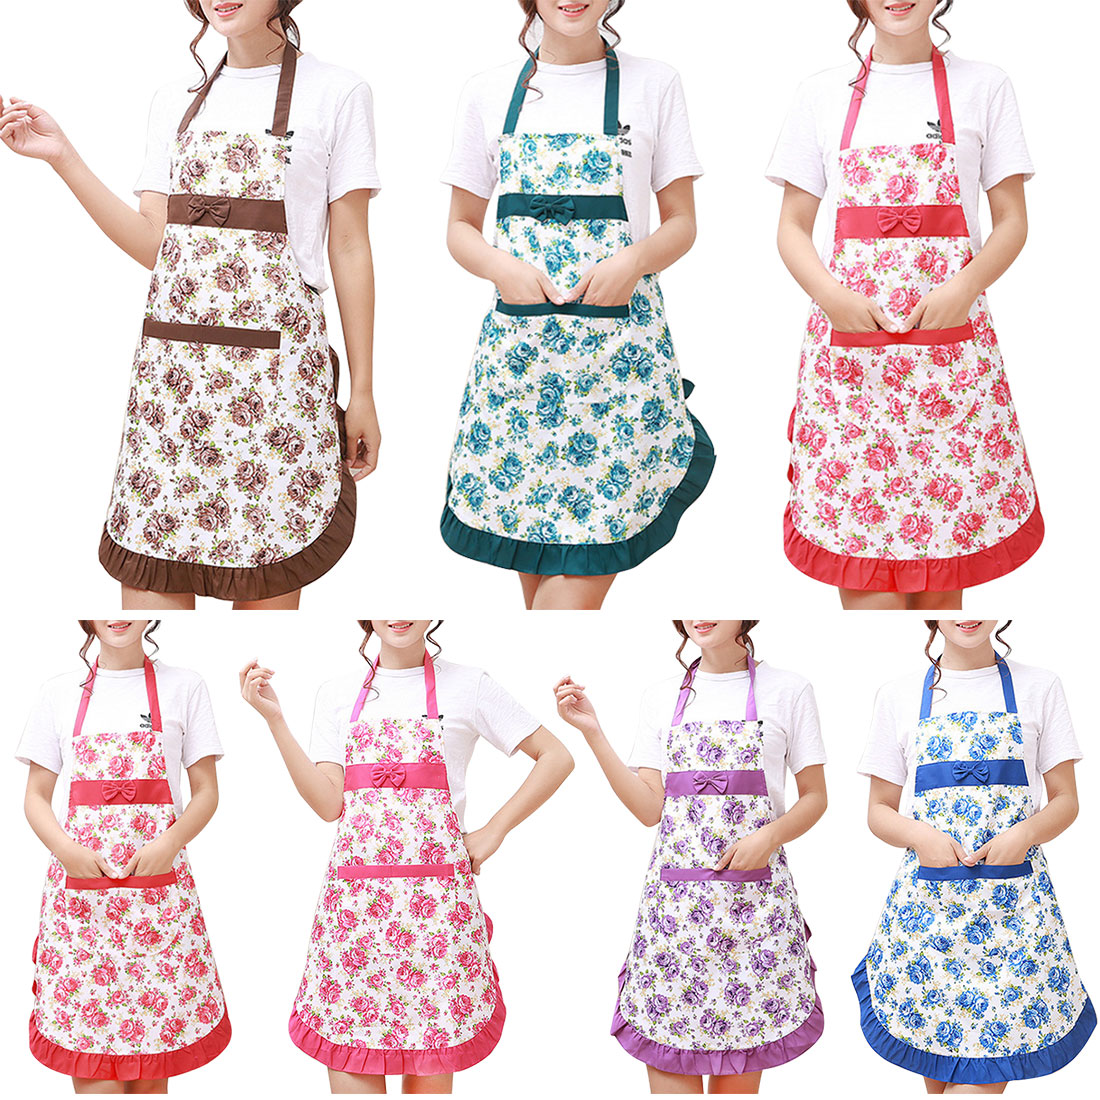 25a453bbe7 New Kitchen Pinafore Floral Cotton Linen Apron Woman Bibs For Home Cooking  Baking Coffee Shop Cleaning Aprons With Pocket